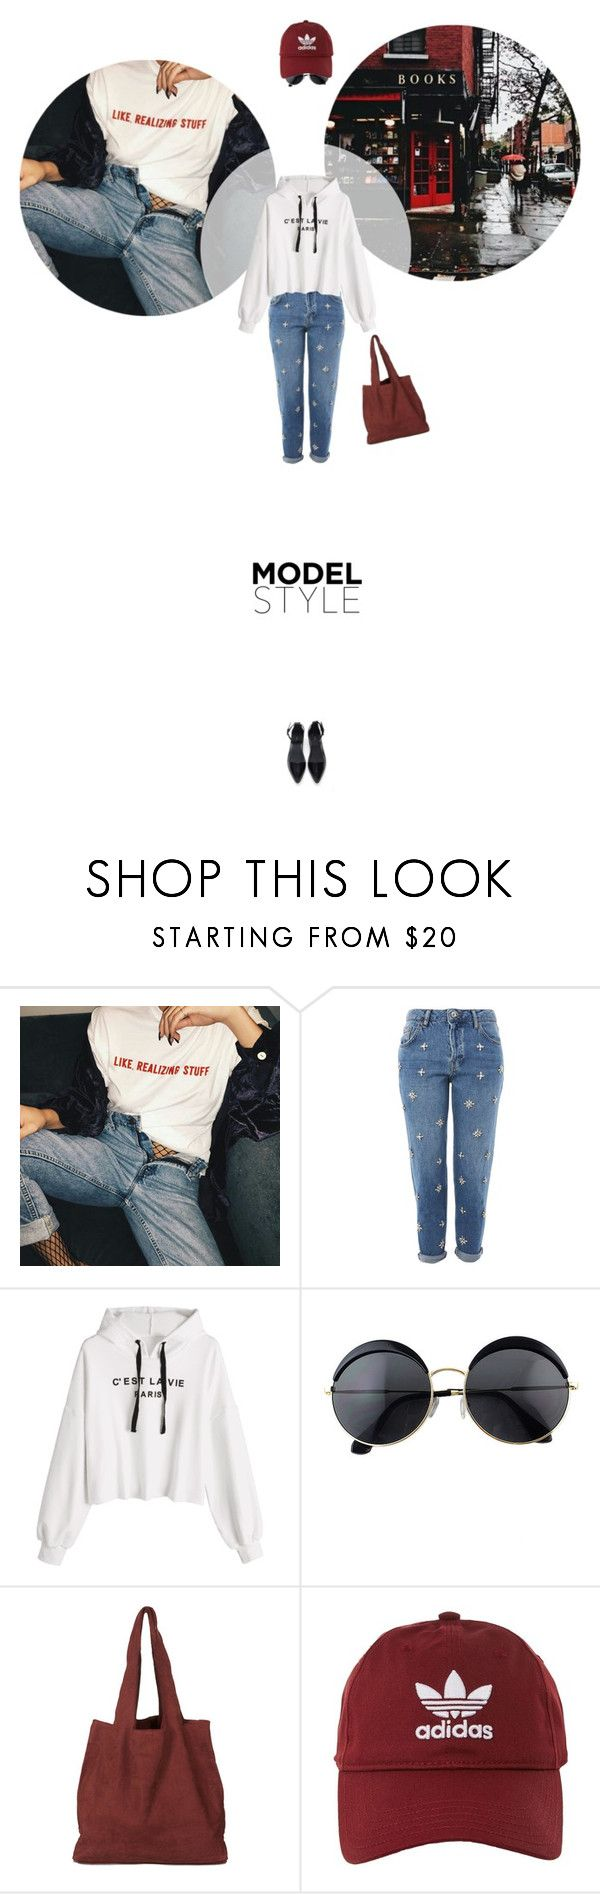 // 1325. Model Style. by lilymcenvy on Polyvore featuring Topshop, Forever 21 and adidas